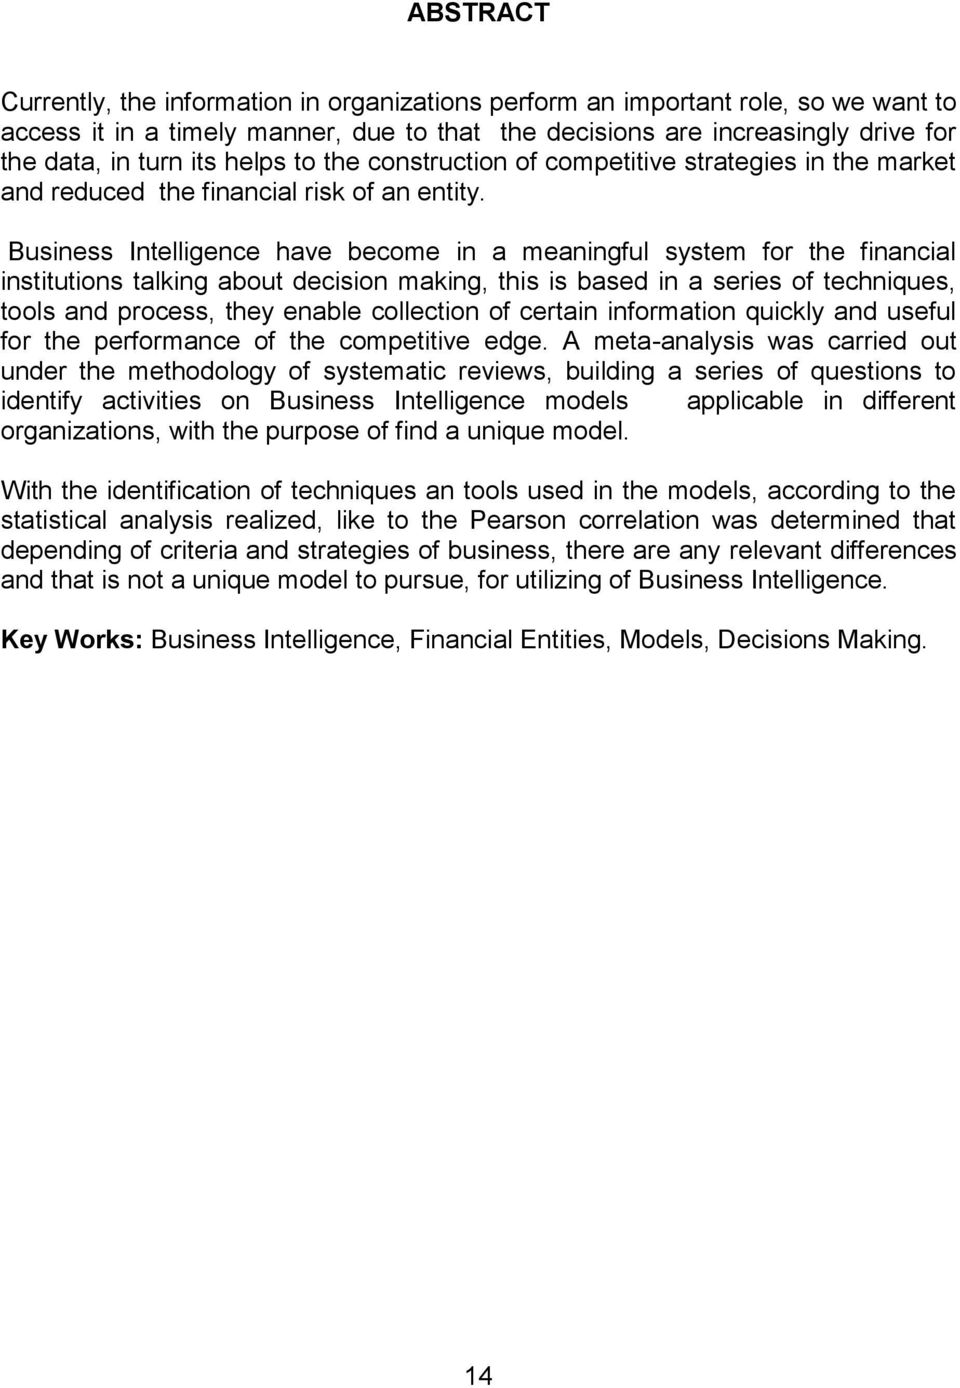 Business Intelligence have become in a meaningful system for the financial institutions talking about decision making, this is based in a series of techniques, tools and process, they enable